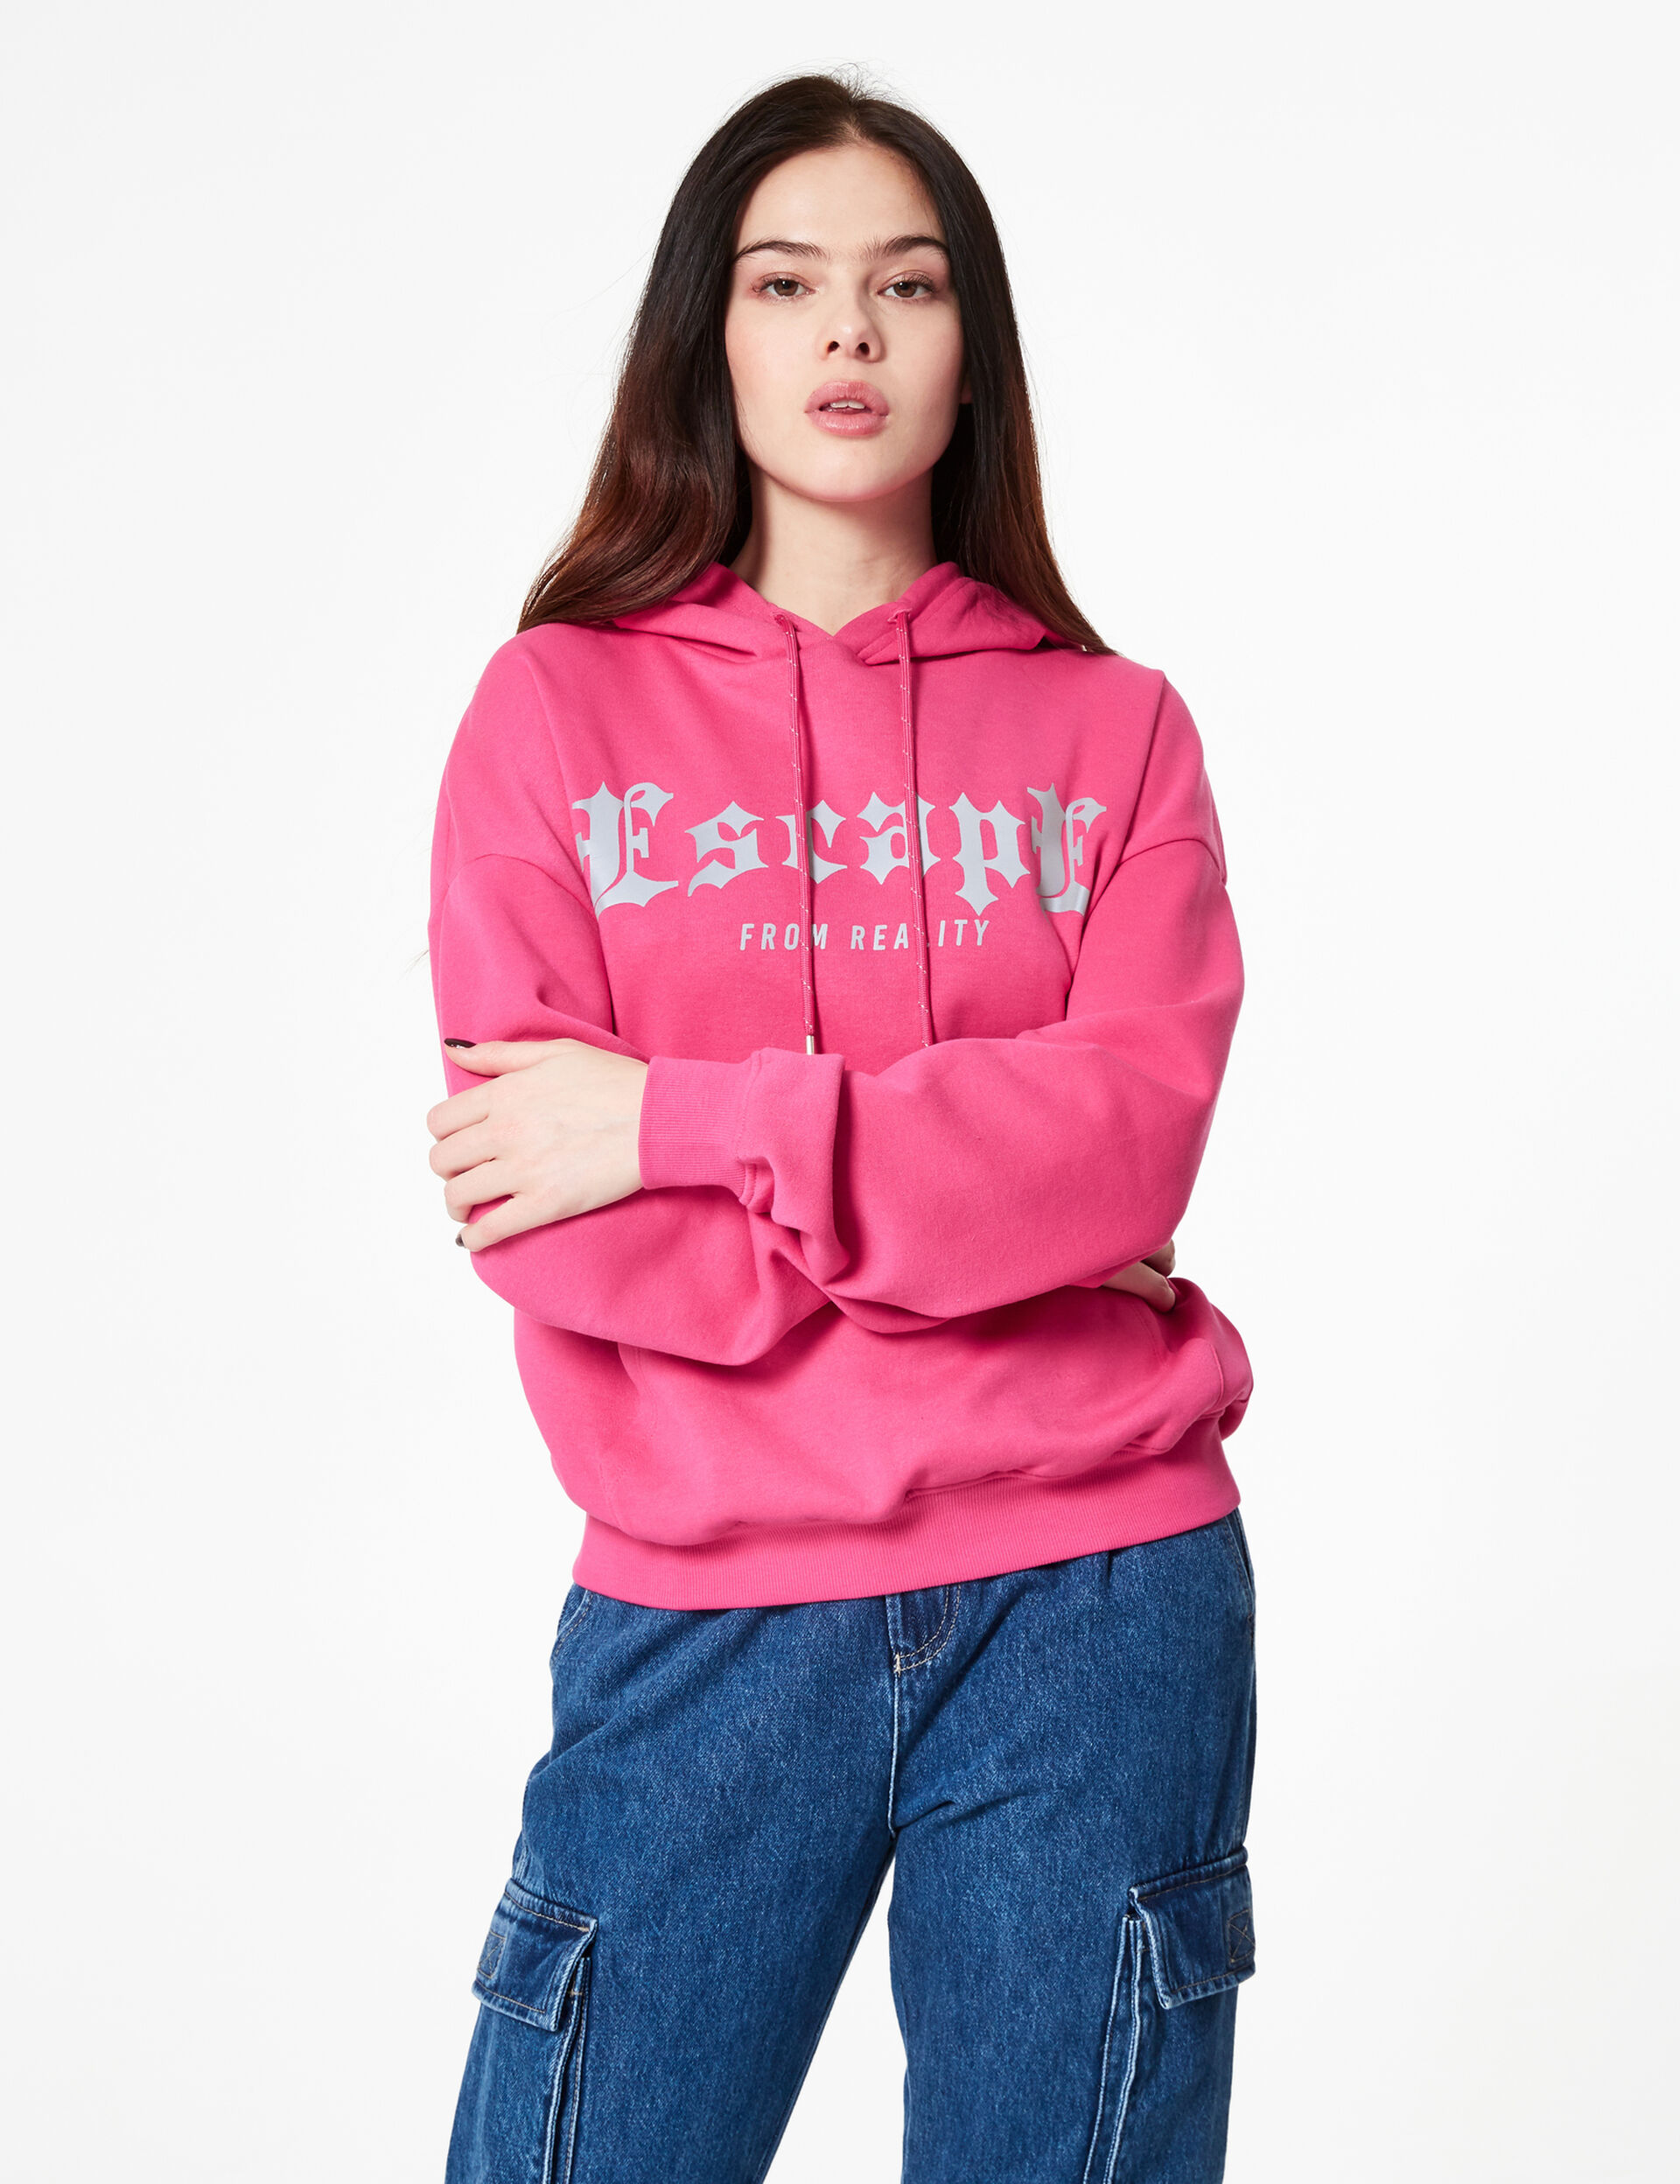 escape from reality sweatshirt